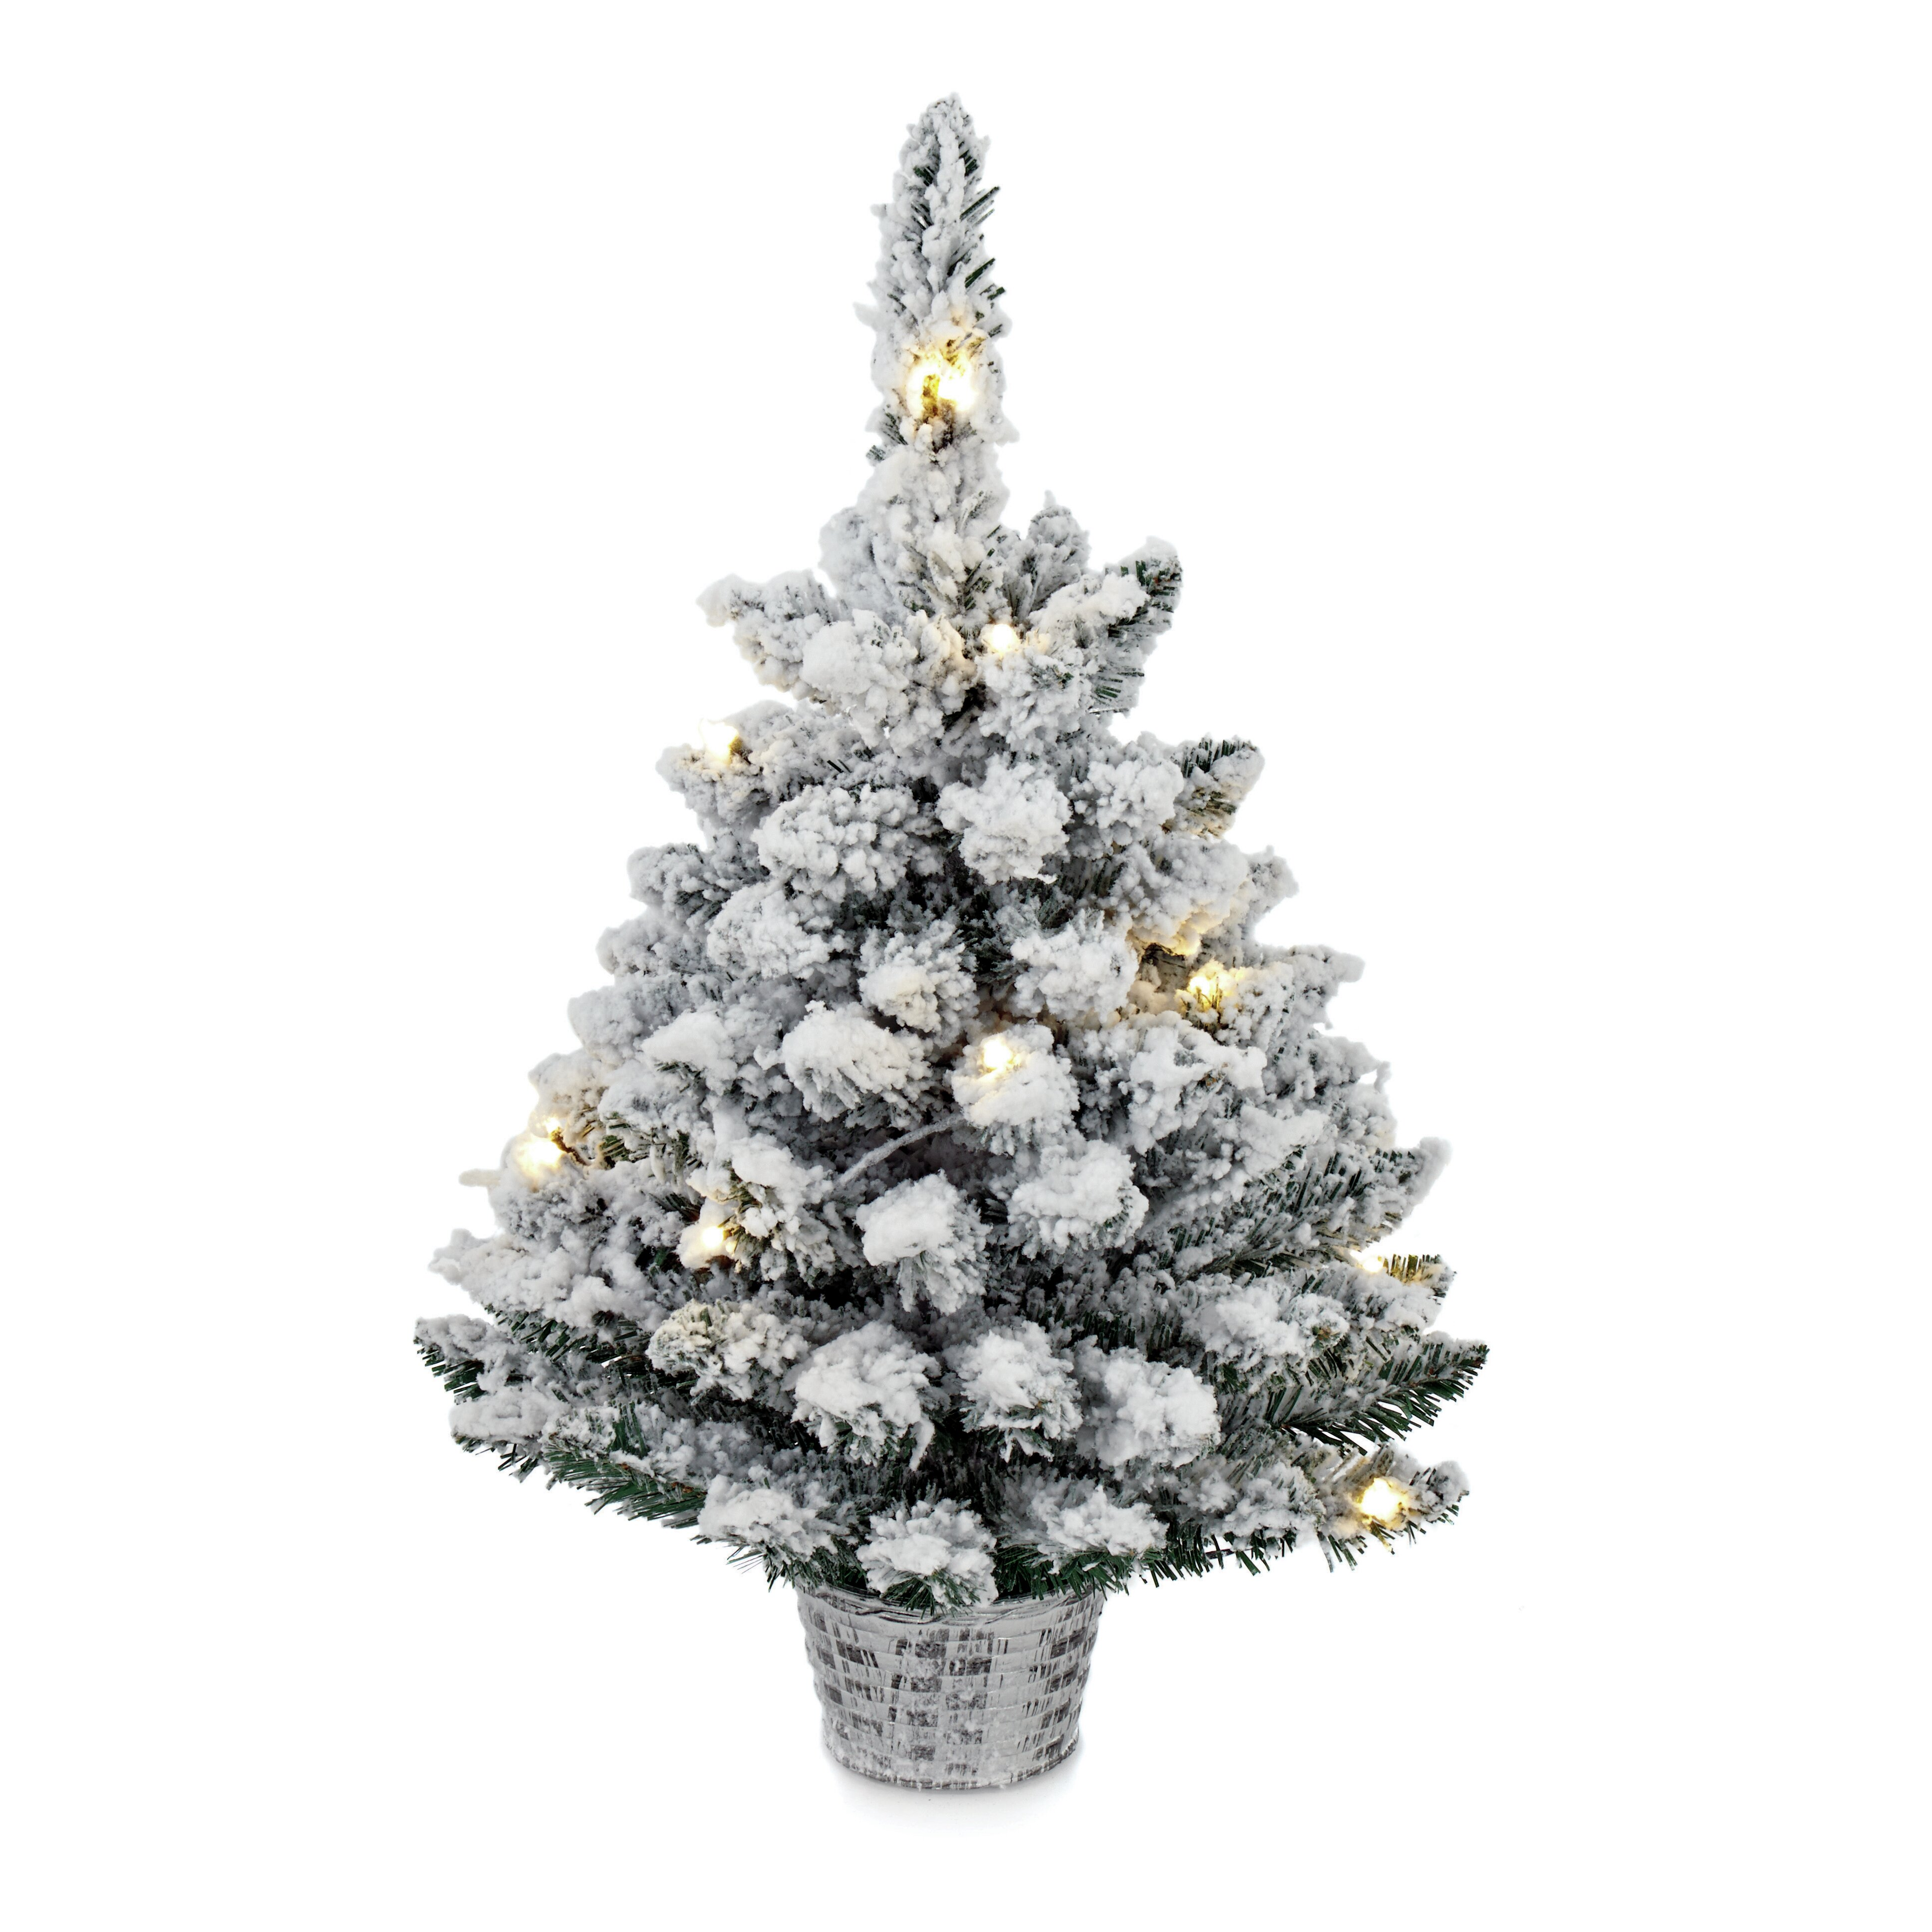 Flocked Pre Lit Christmas Tree.Pre Lit Flocked 2ft Green Artificial Christmas Tree With 15 White Lights With Basket